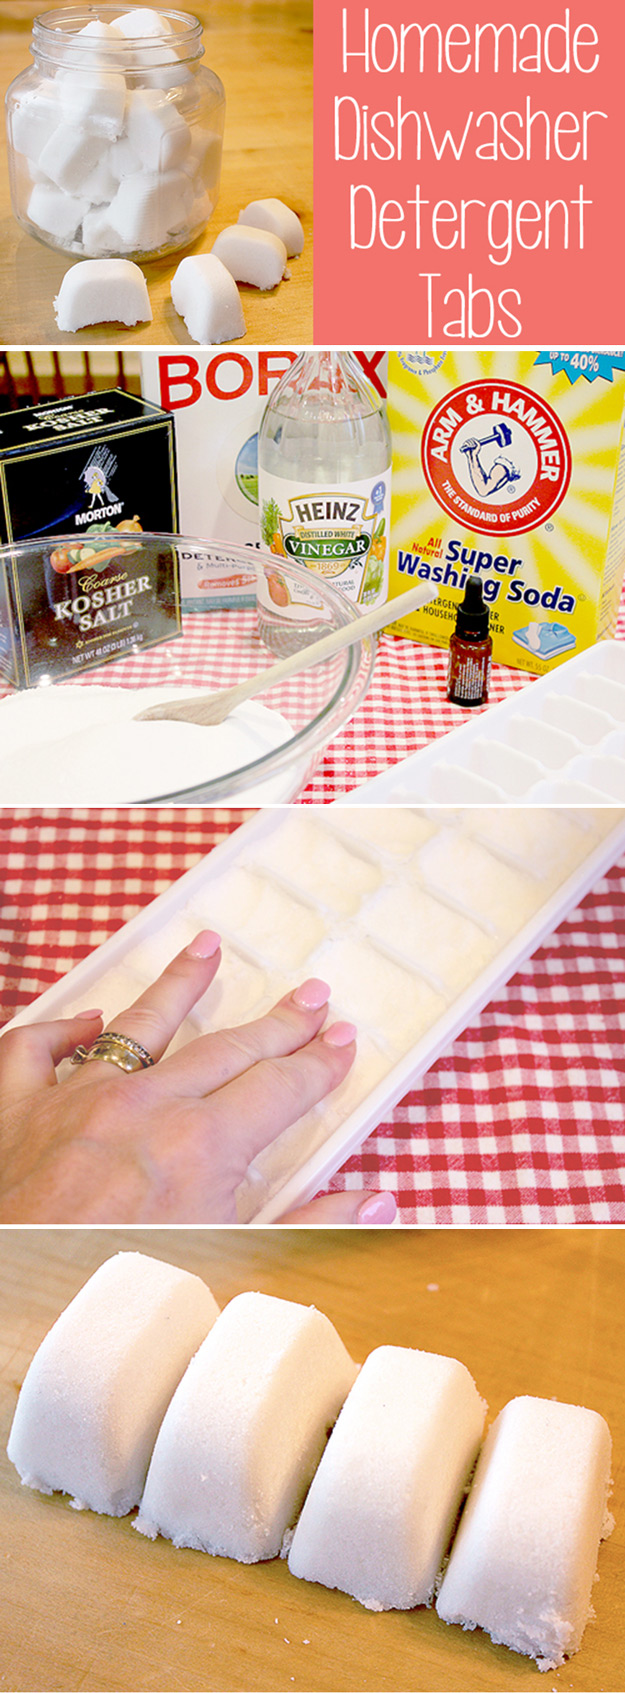 14-Unexpected-Ways-to-Use-an-Ice-Cube-Tray-Dishwasher-Detergent-Tabs